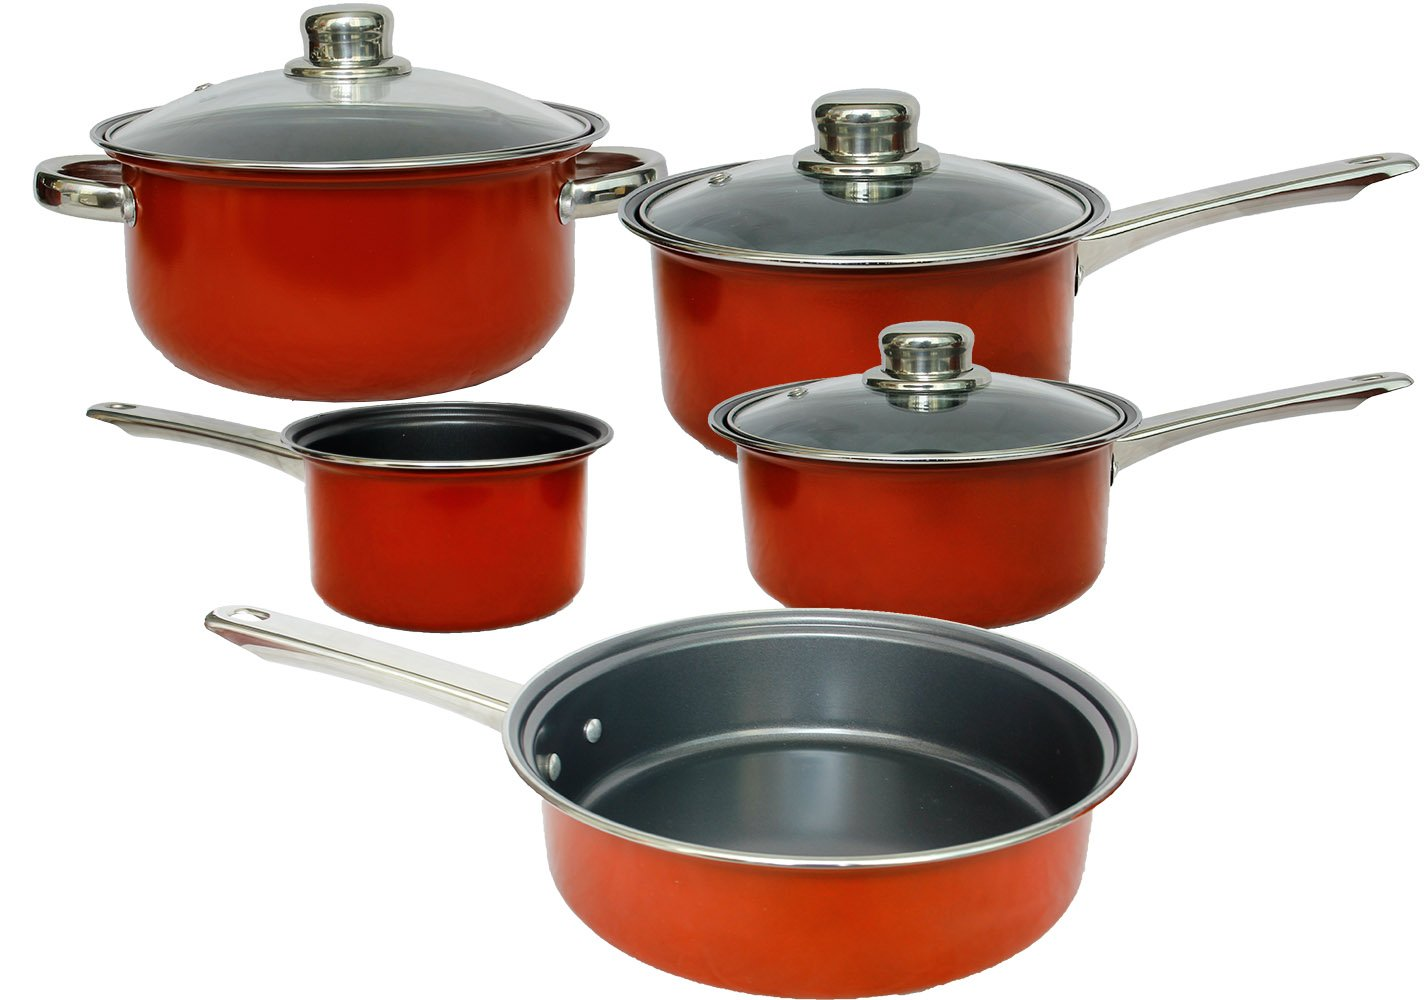 Non-Stick Cookware Set, Non-Stcik Pots and Pans, Dishwasher Safe Oven Safe, Includes: Milk Pan, Saucepans, Casserole Pan, Fry Pan, Non-Stick Interior, Stainless Steel Handle, 8-Piece, Red